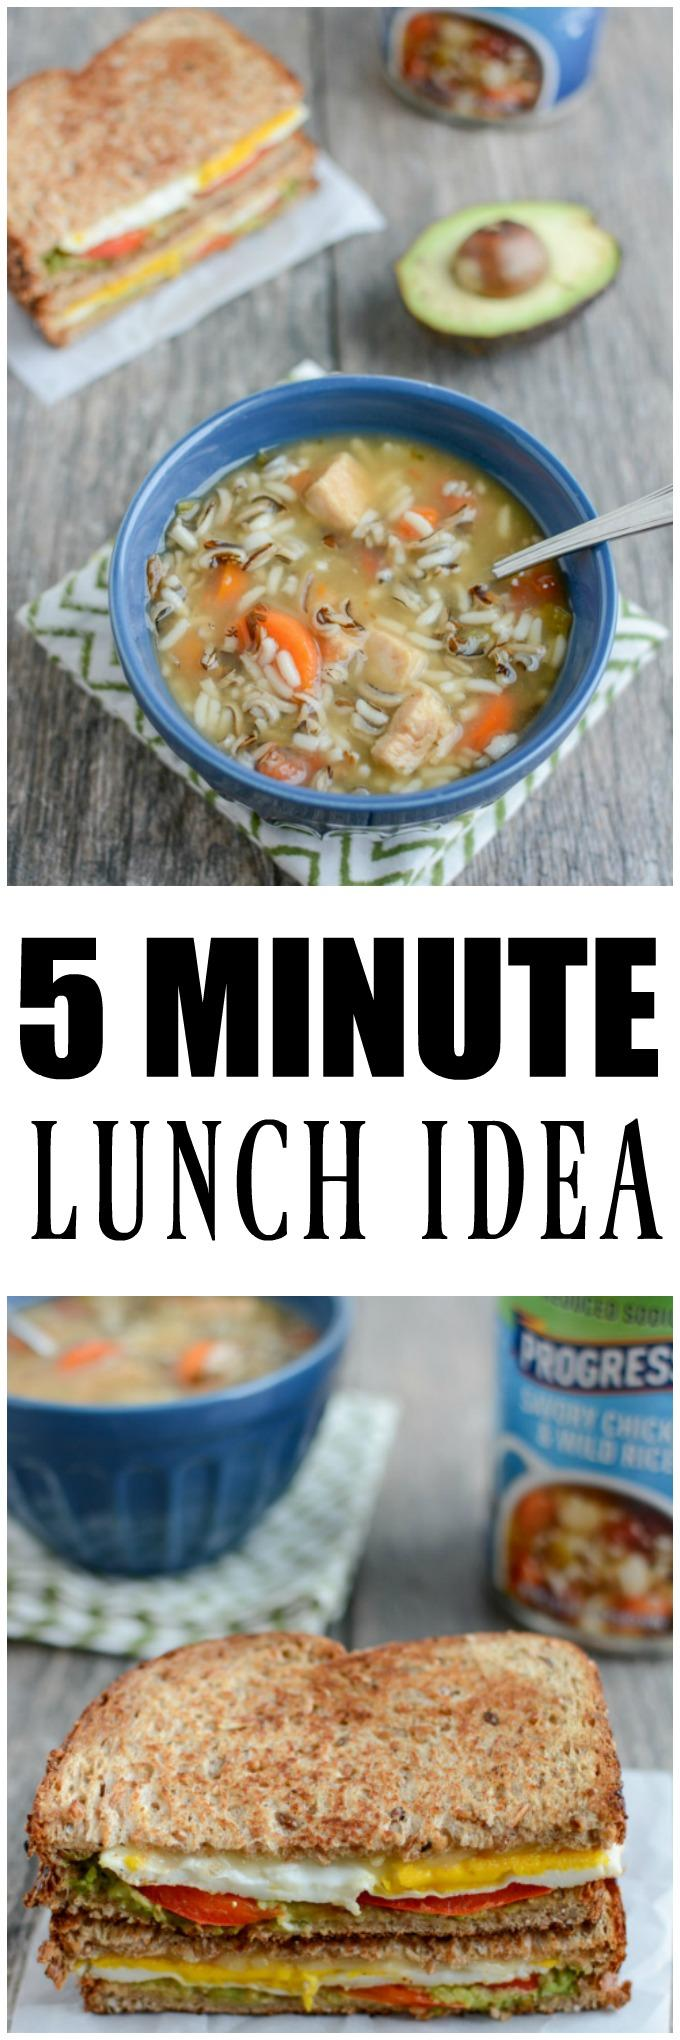 This Easy 5 Minute Lunch is perfect for a busy day. Pair a jazzed up grilled cheese with a cup of soup for an easy, filling meal.